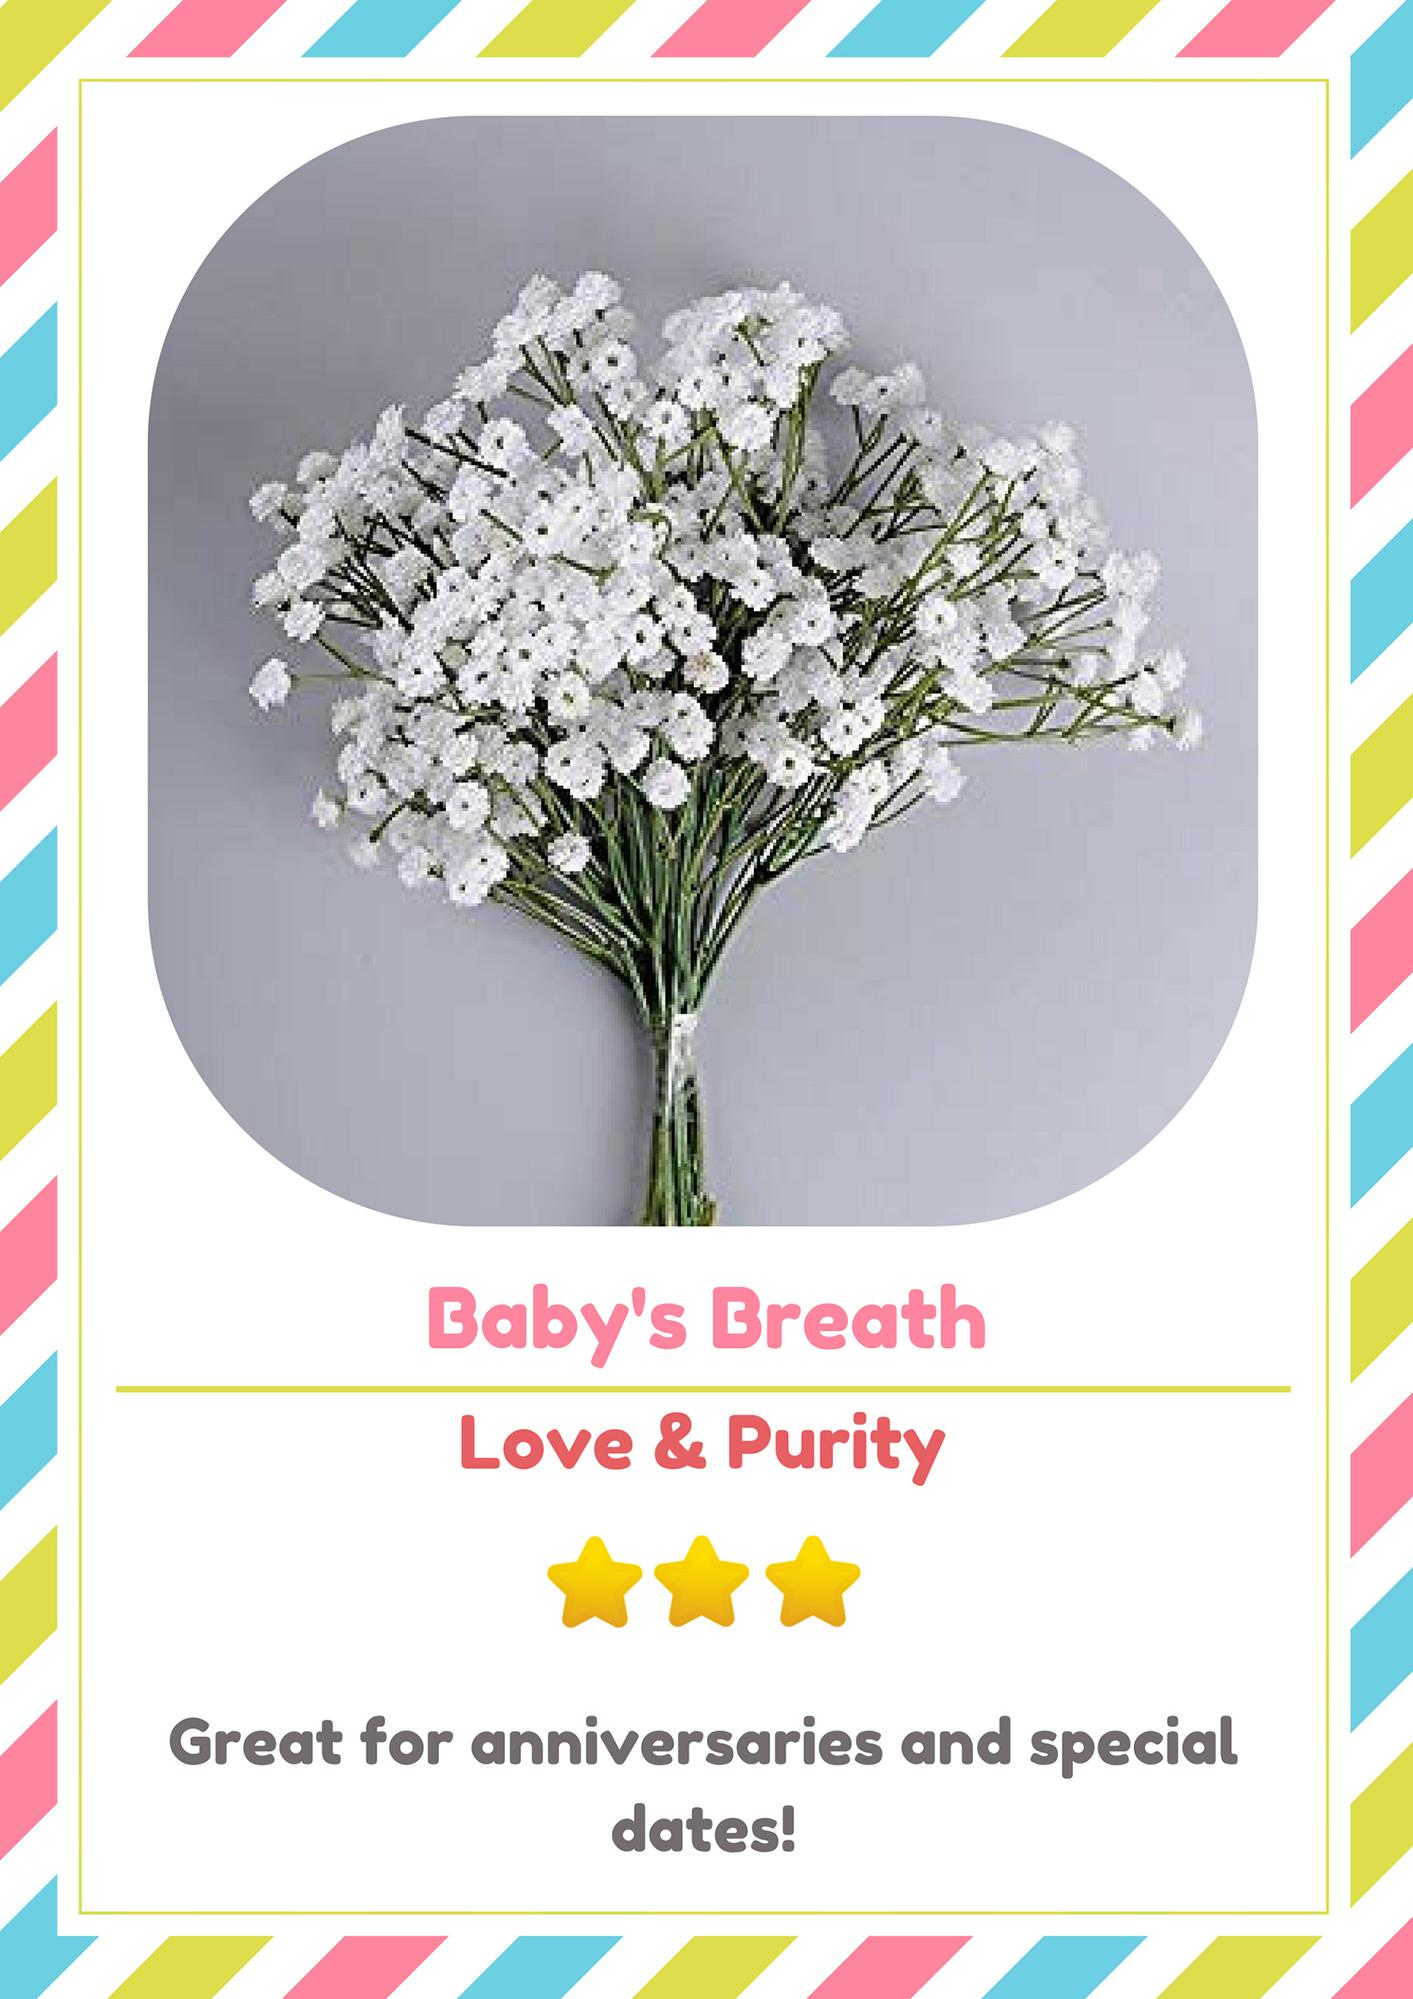 Perfect Gift! - Babys Breath Starter Kit